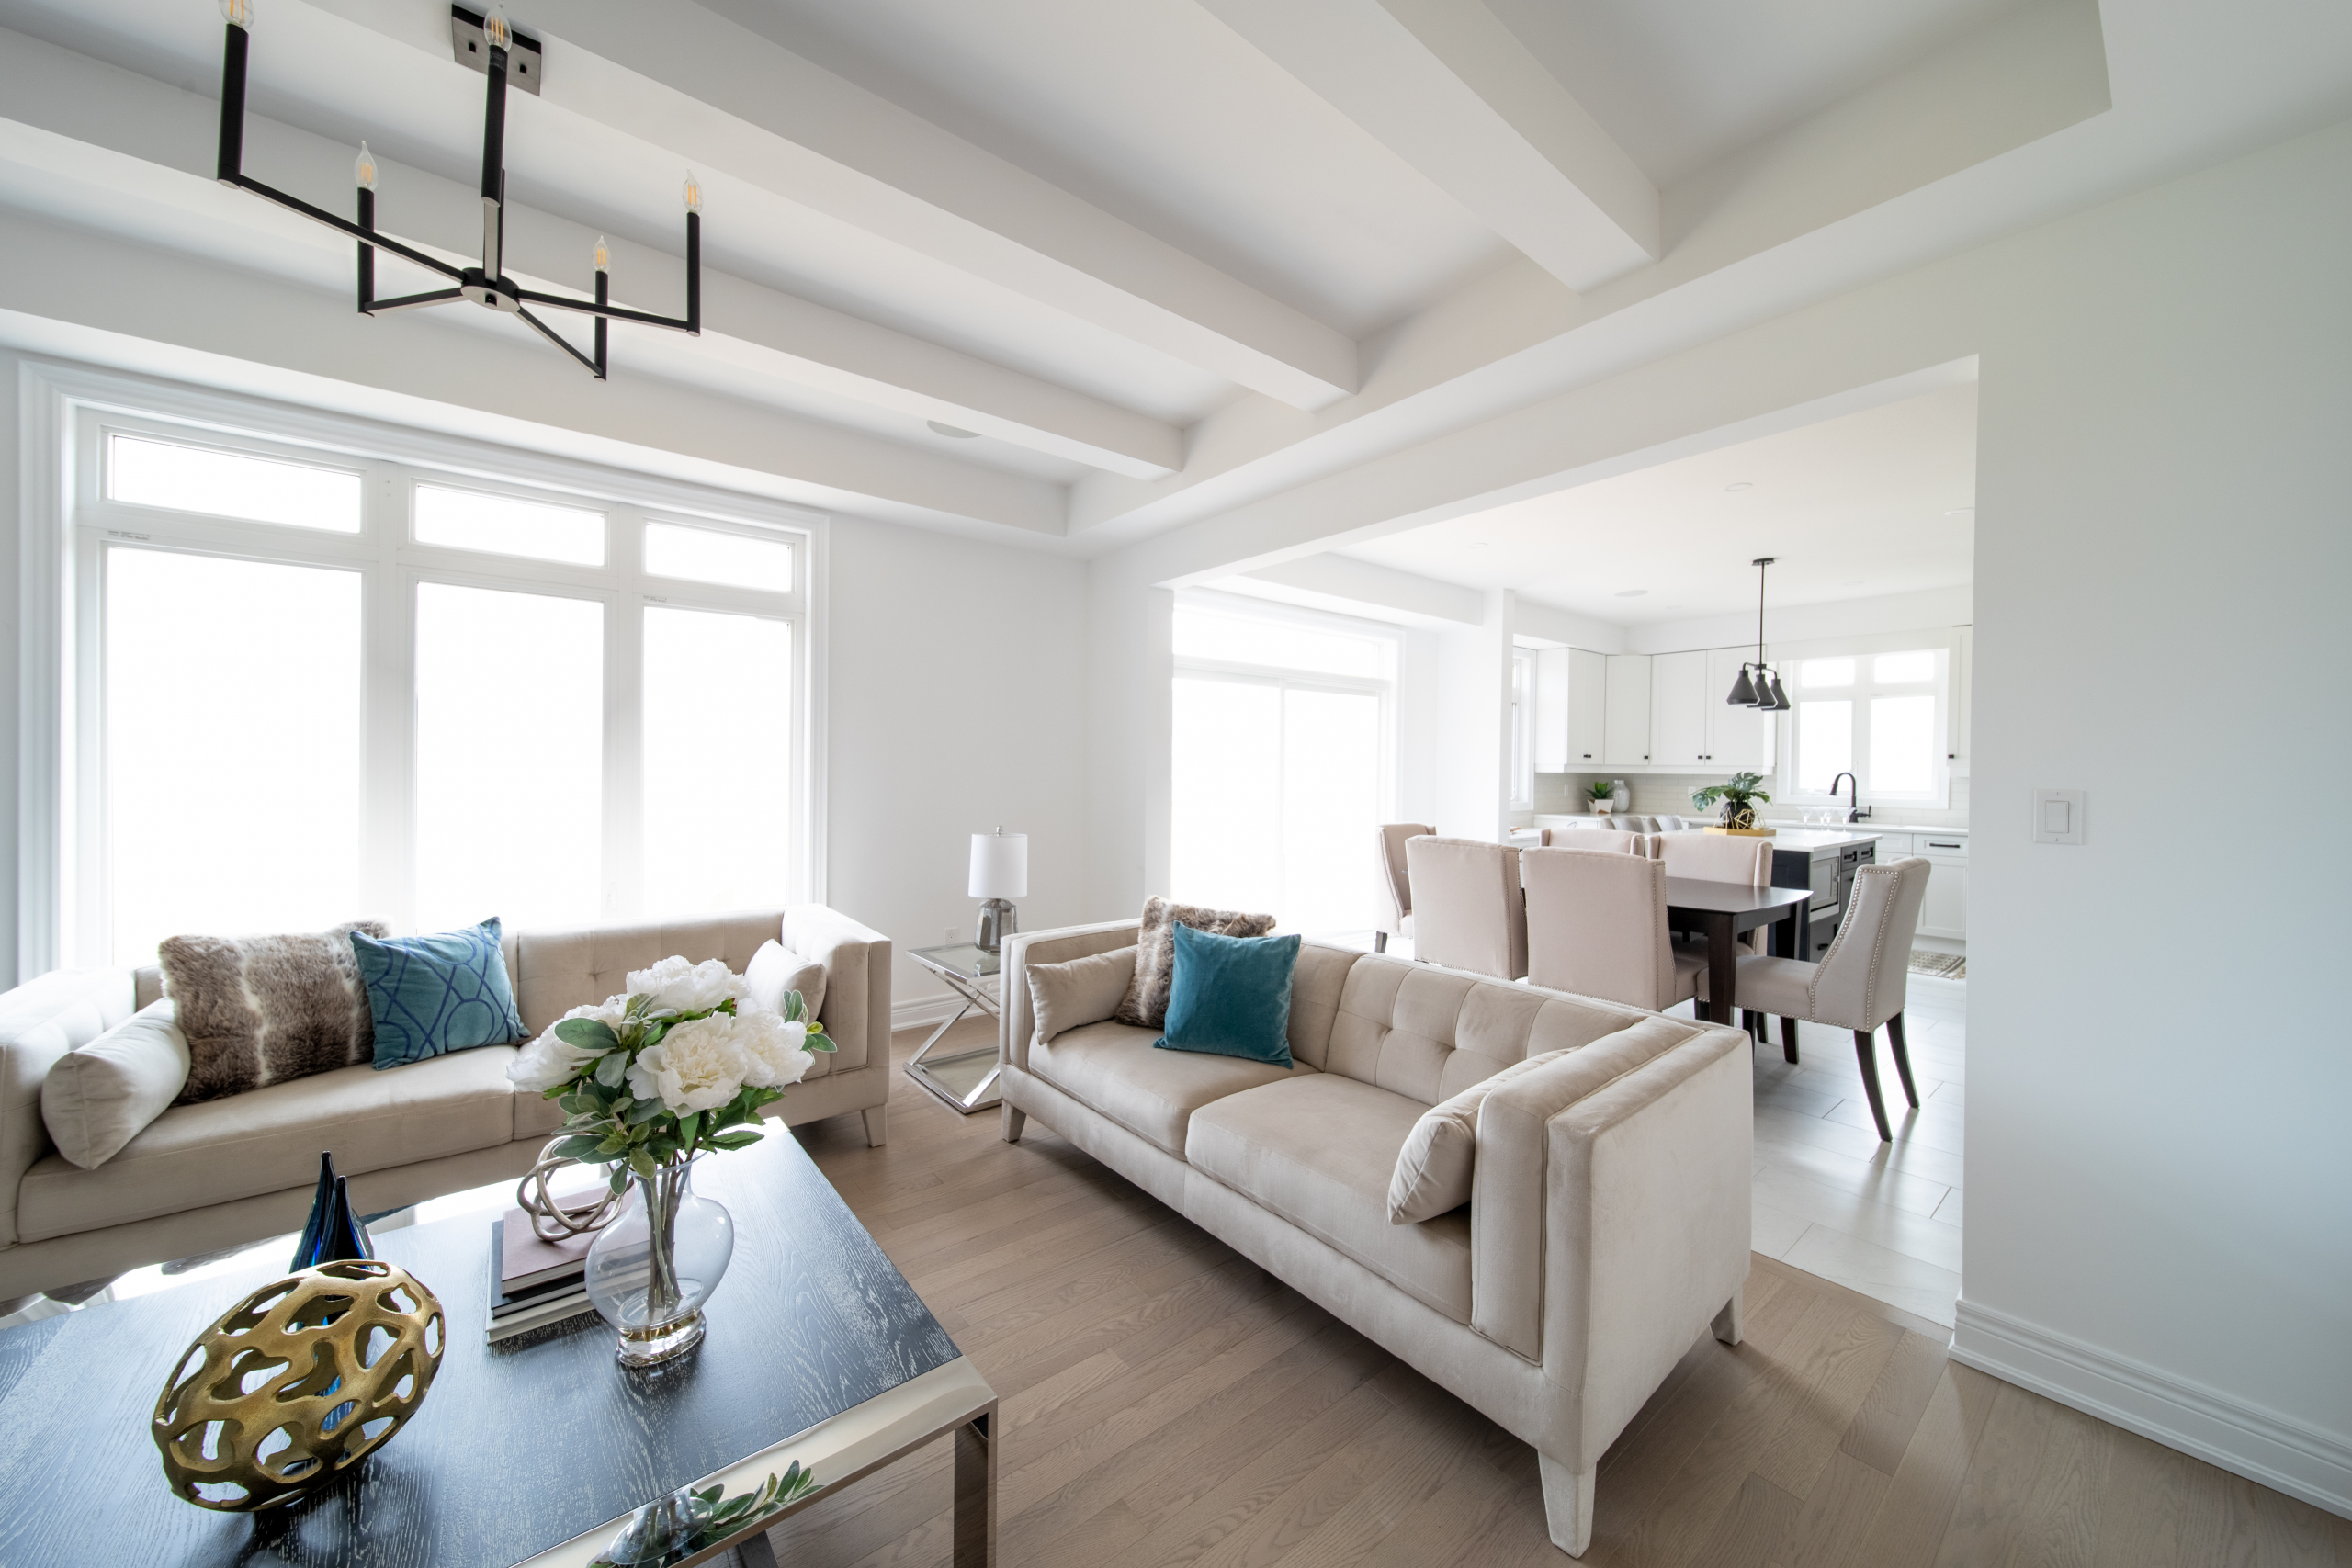 Mountainview Homes - Inspiration Gallery 11